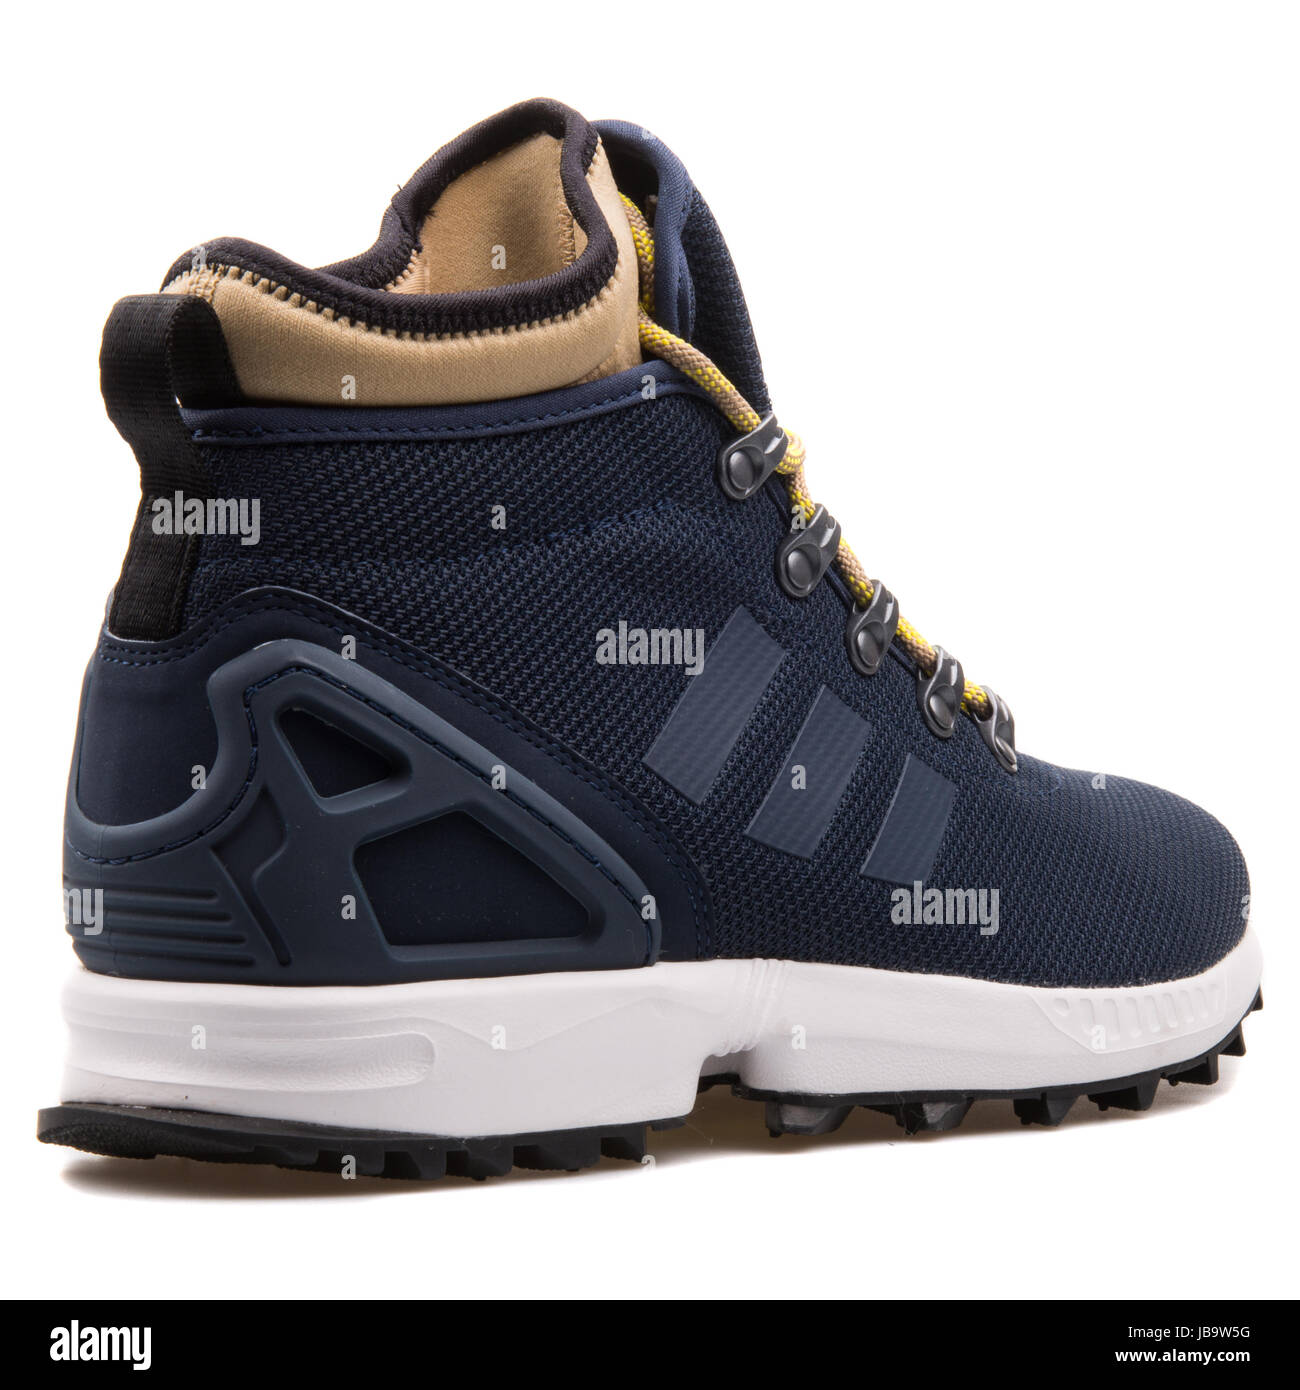 official photos 5fdb6 eaa74 Adidas ZX Flux Winter Navy Blue Men's Sports Shoes - S82932 ...